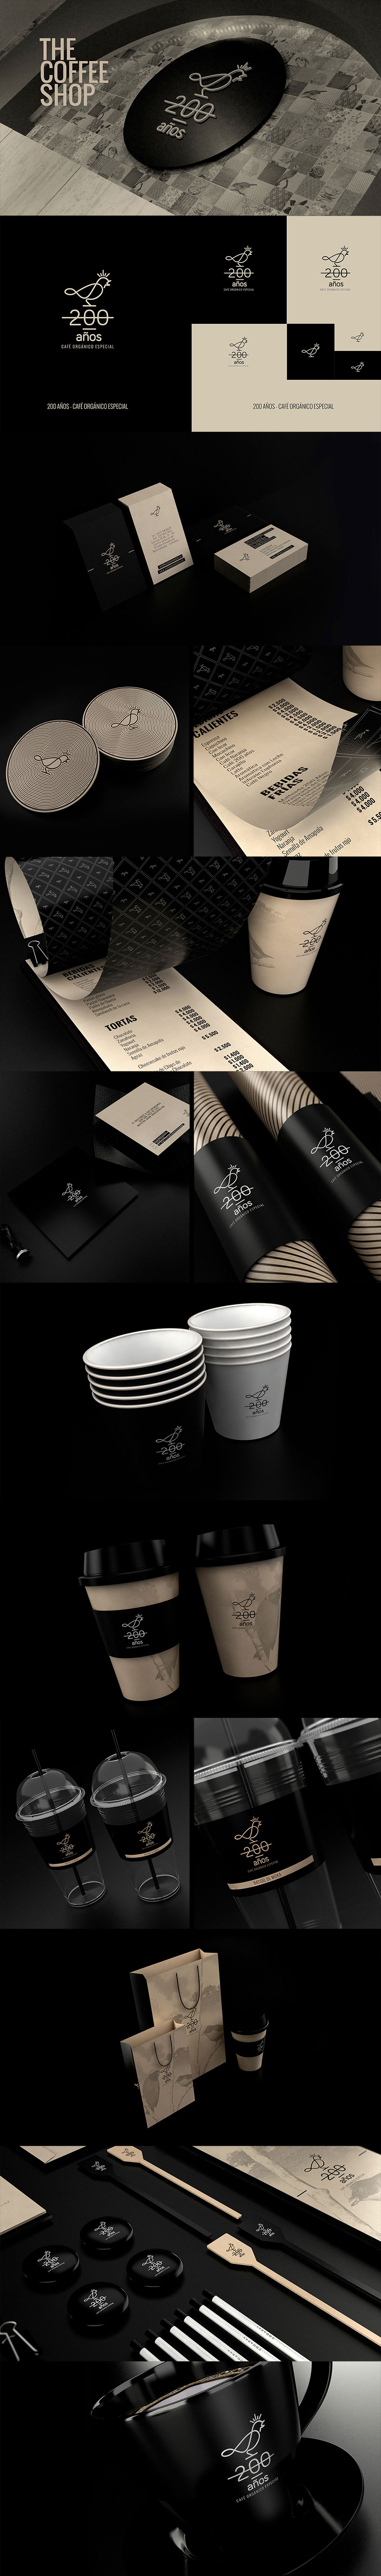 200 Years Coffee by David Espinosa IDS